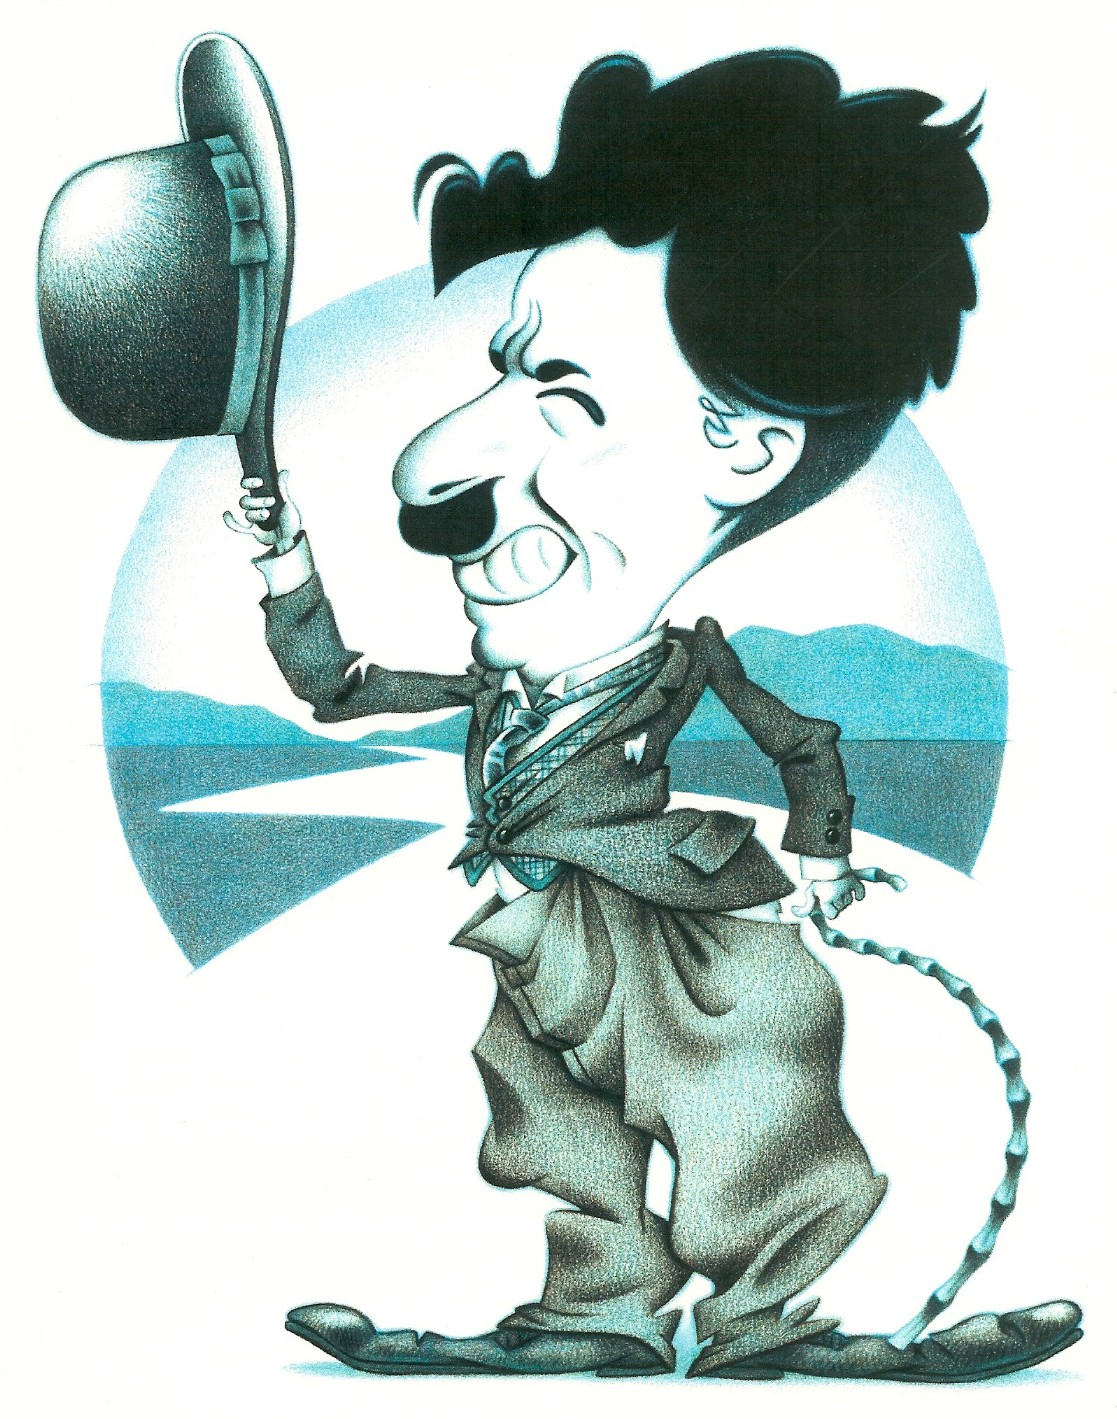 http://upload.wikimedia.org/wikipedia/commons/f/f7/Chaplin_caricature.JPG